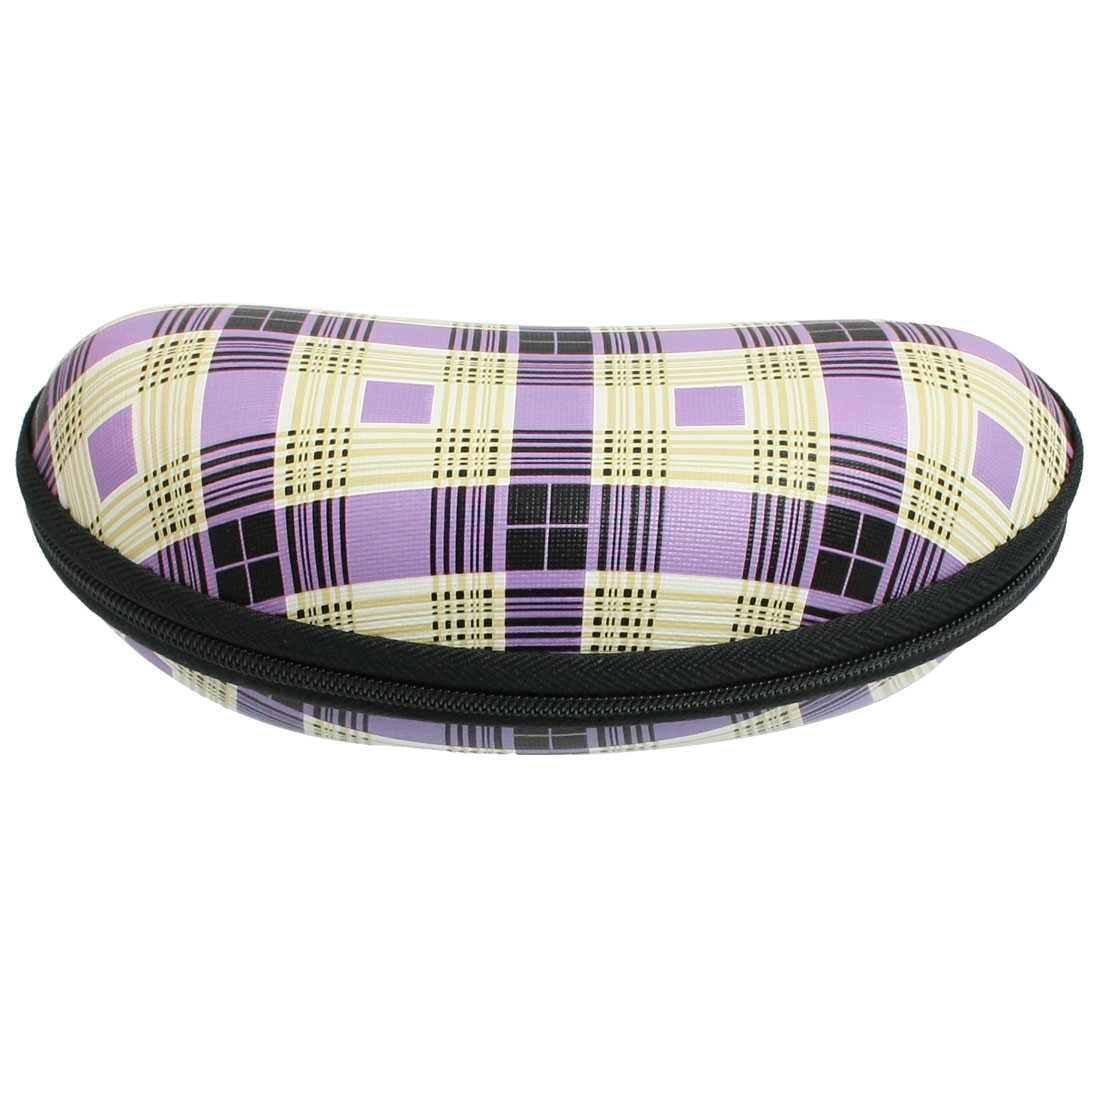 Plaid Pattern Fleece Lining Oval Shaped Zipper Closure Eyeglasses Case Purple